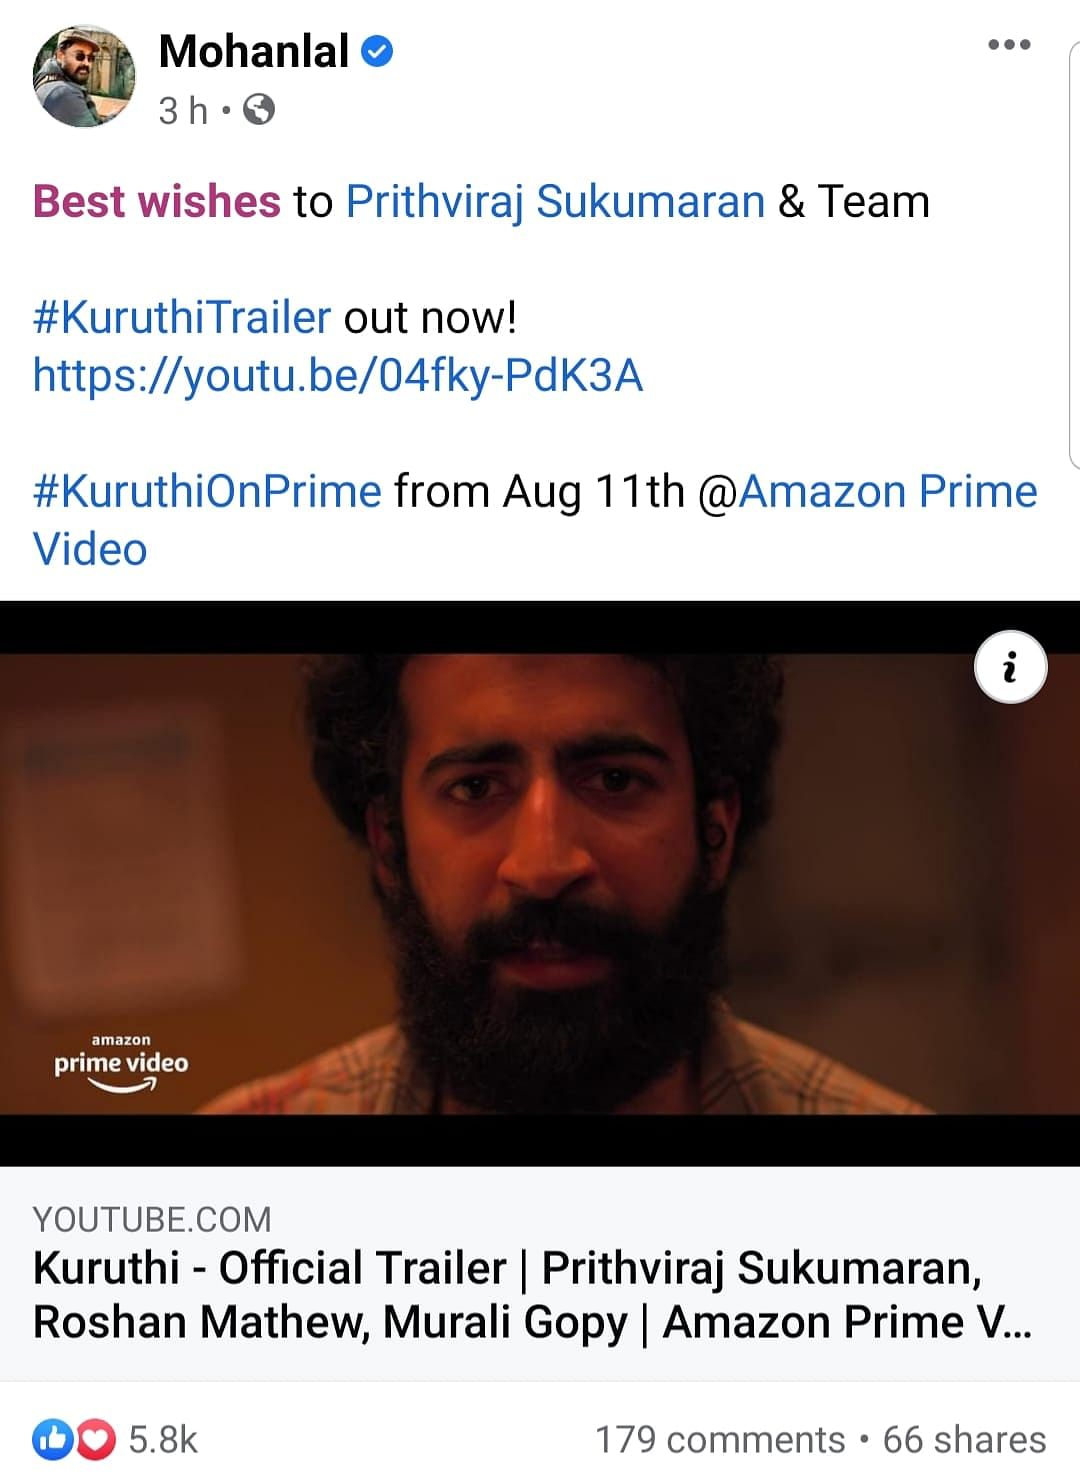 Mohanlal Has a Message For Prithviraj Ahead of 'Kuruthi' Release